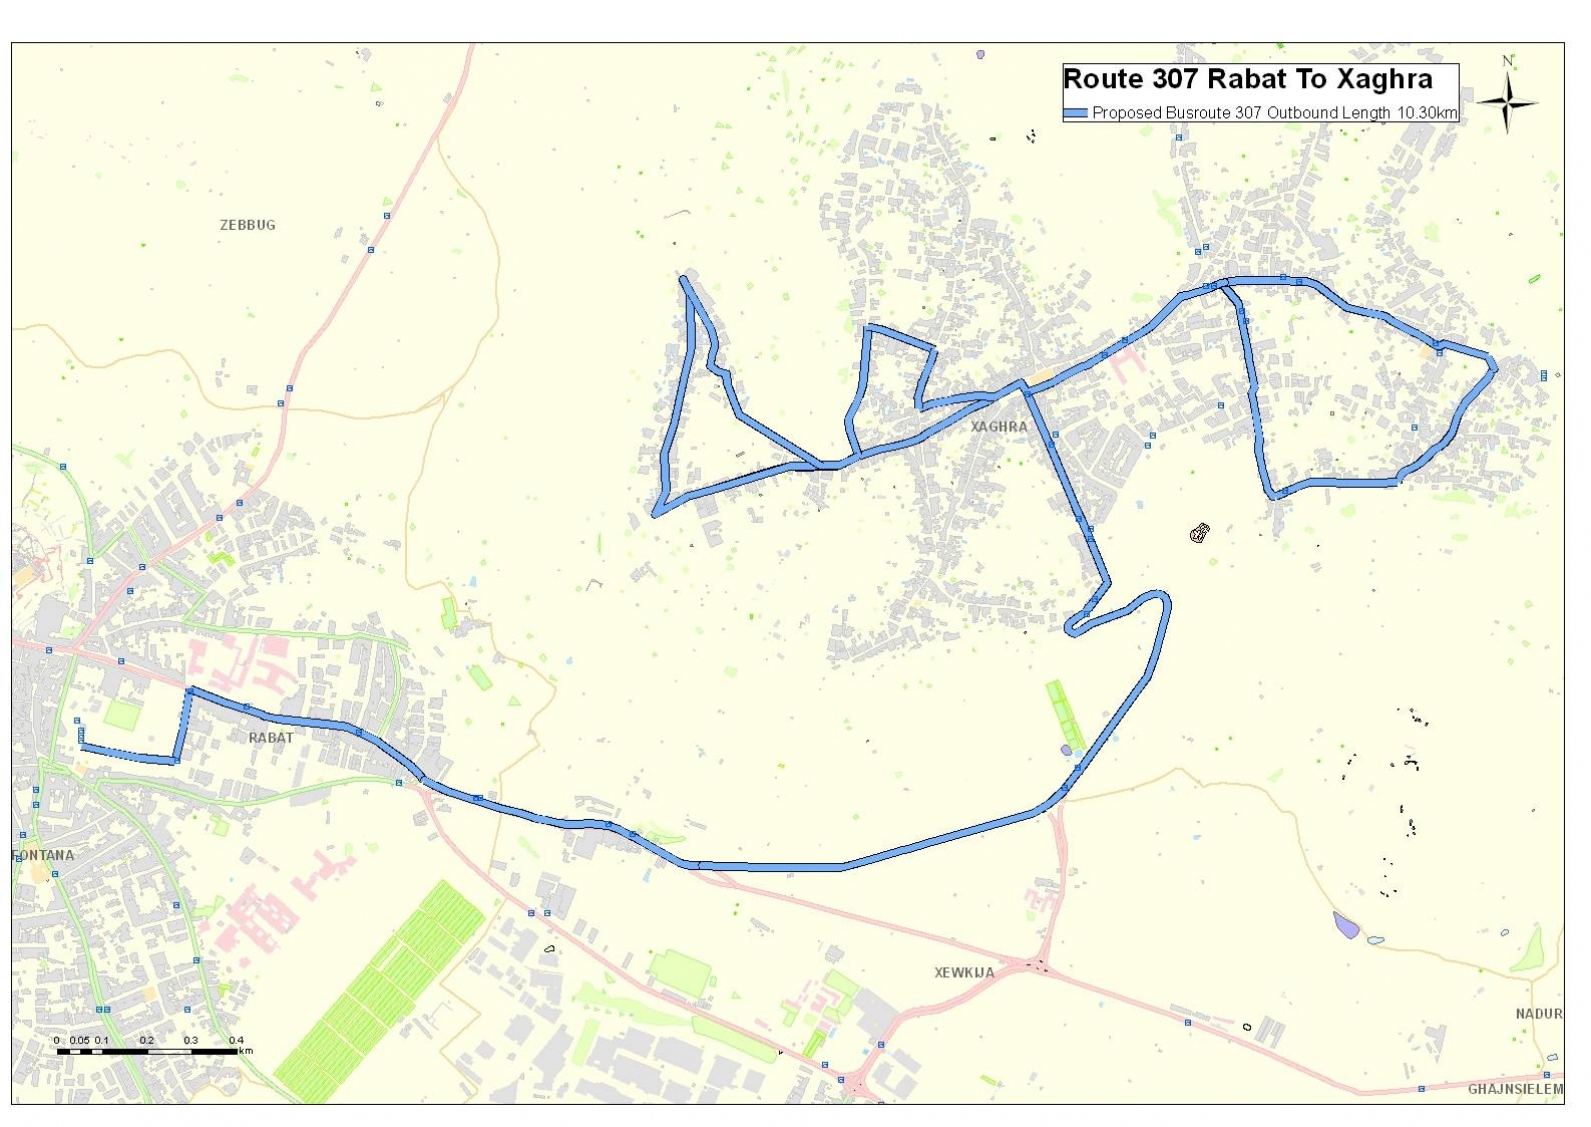 Land-current-network-routes-and-schedules-Gozo-14